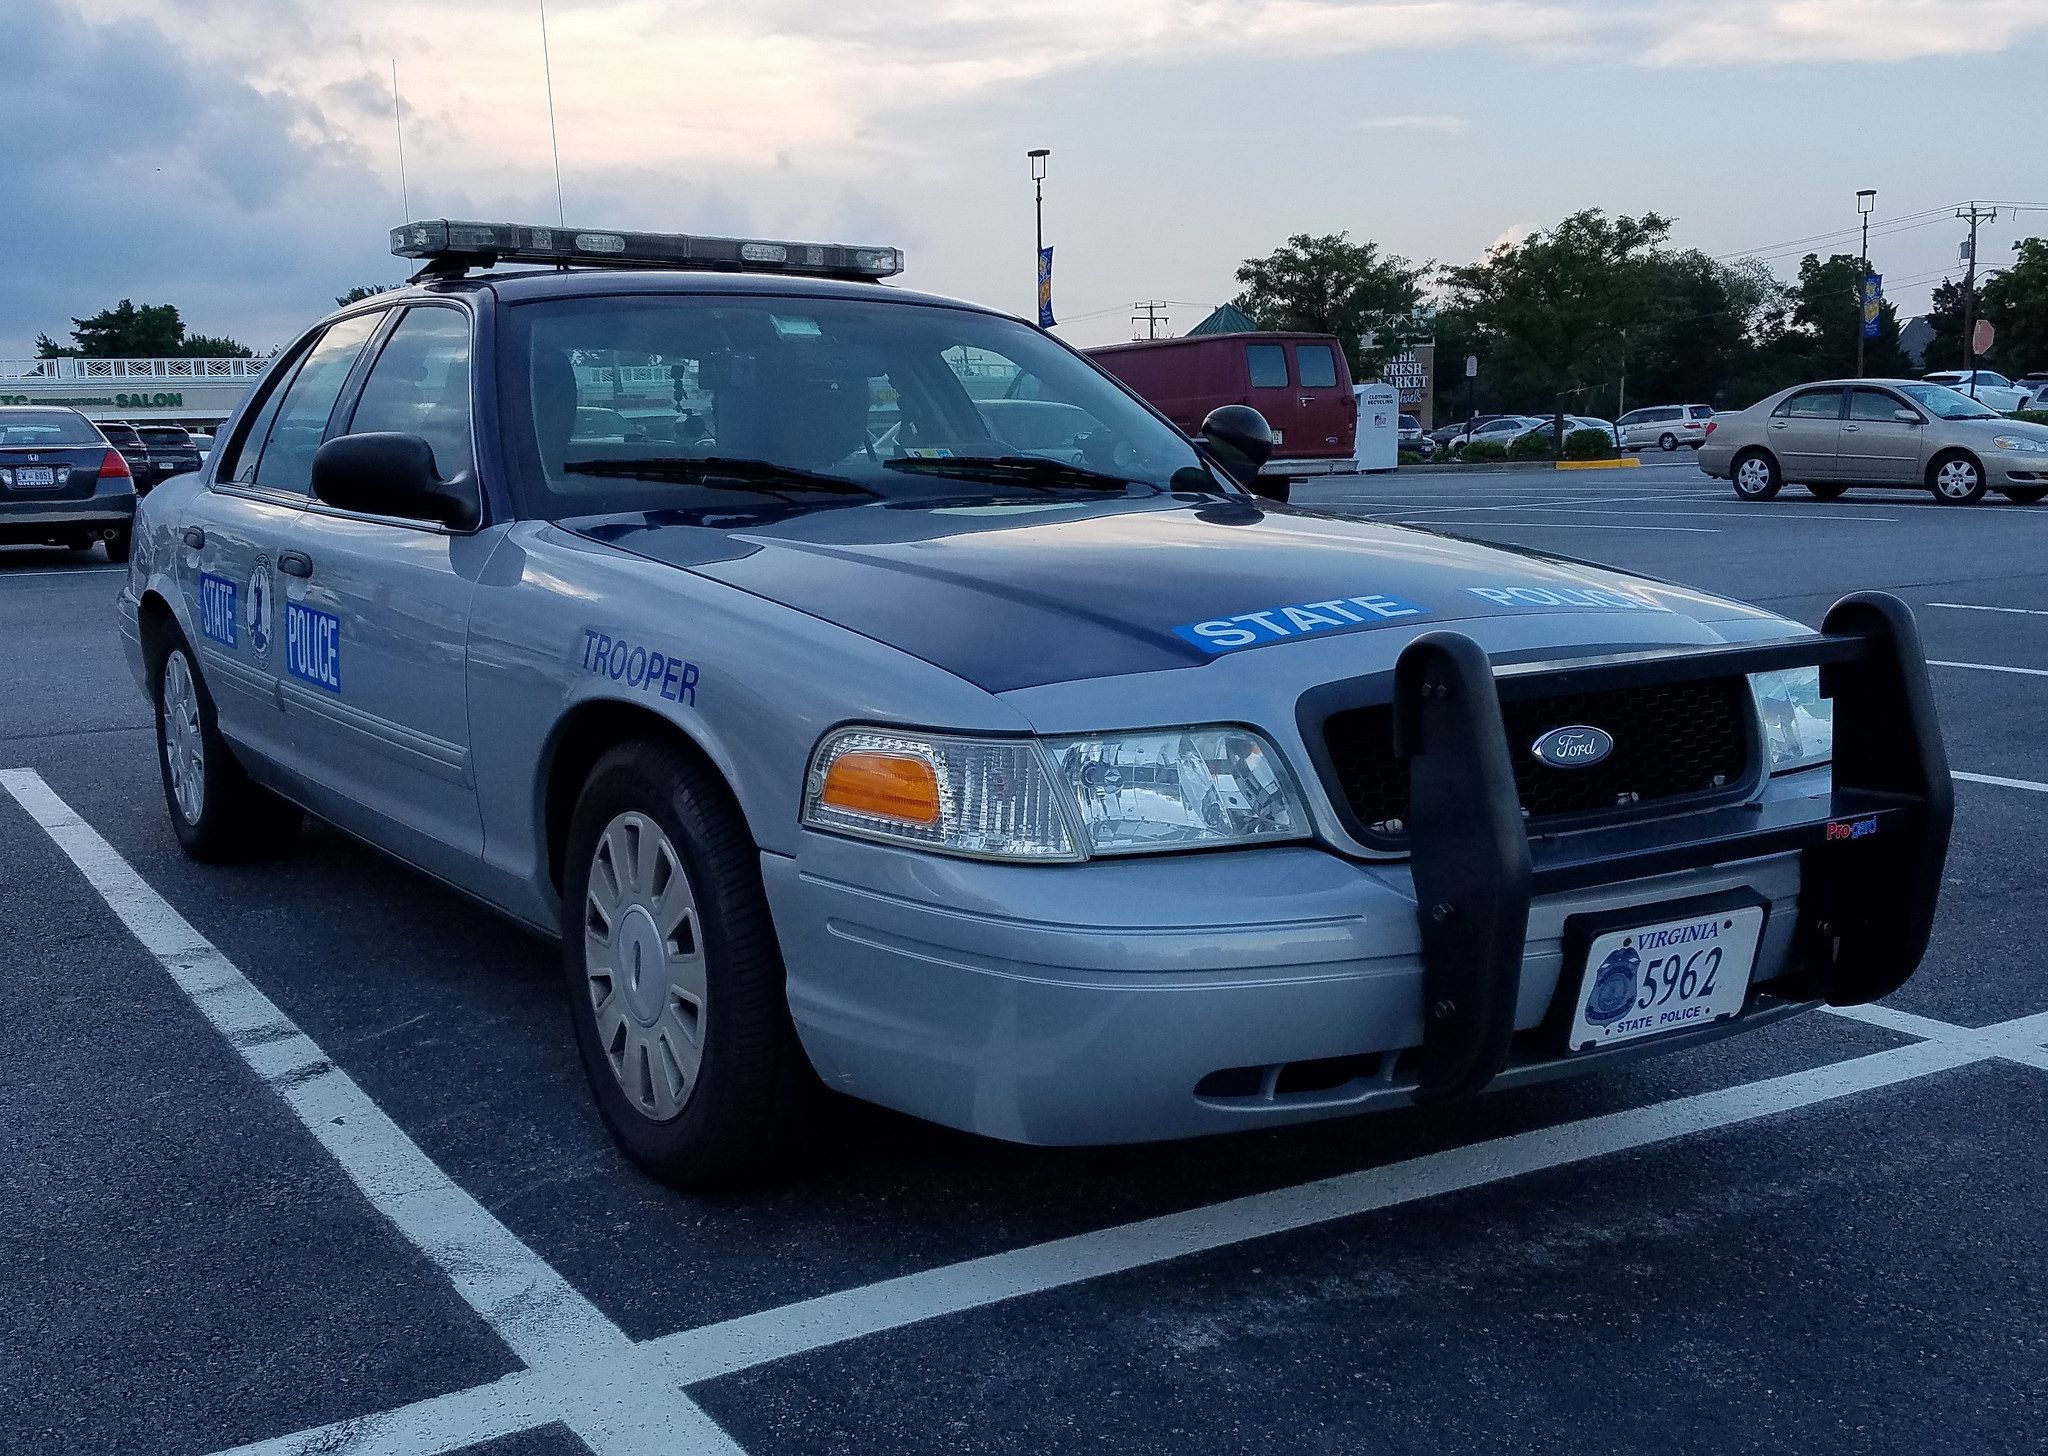 Virginia State Police 2011 Ford Crown Victoria Police Interceptor Victoria Police Police Cars State Police